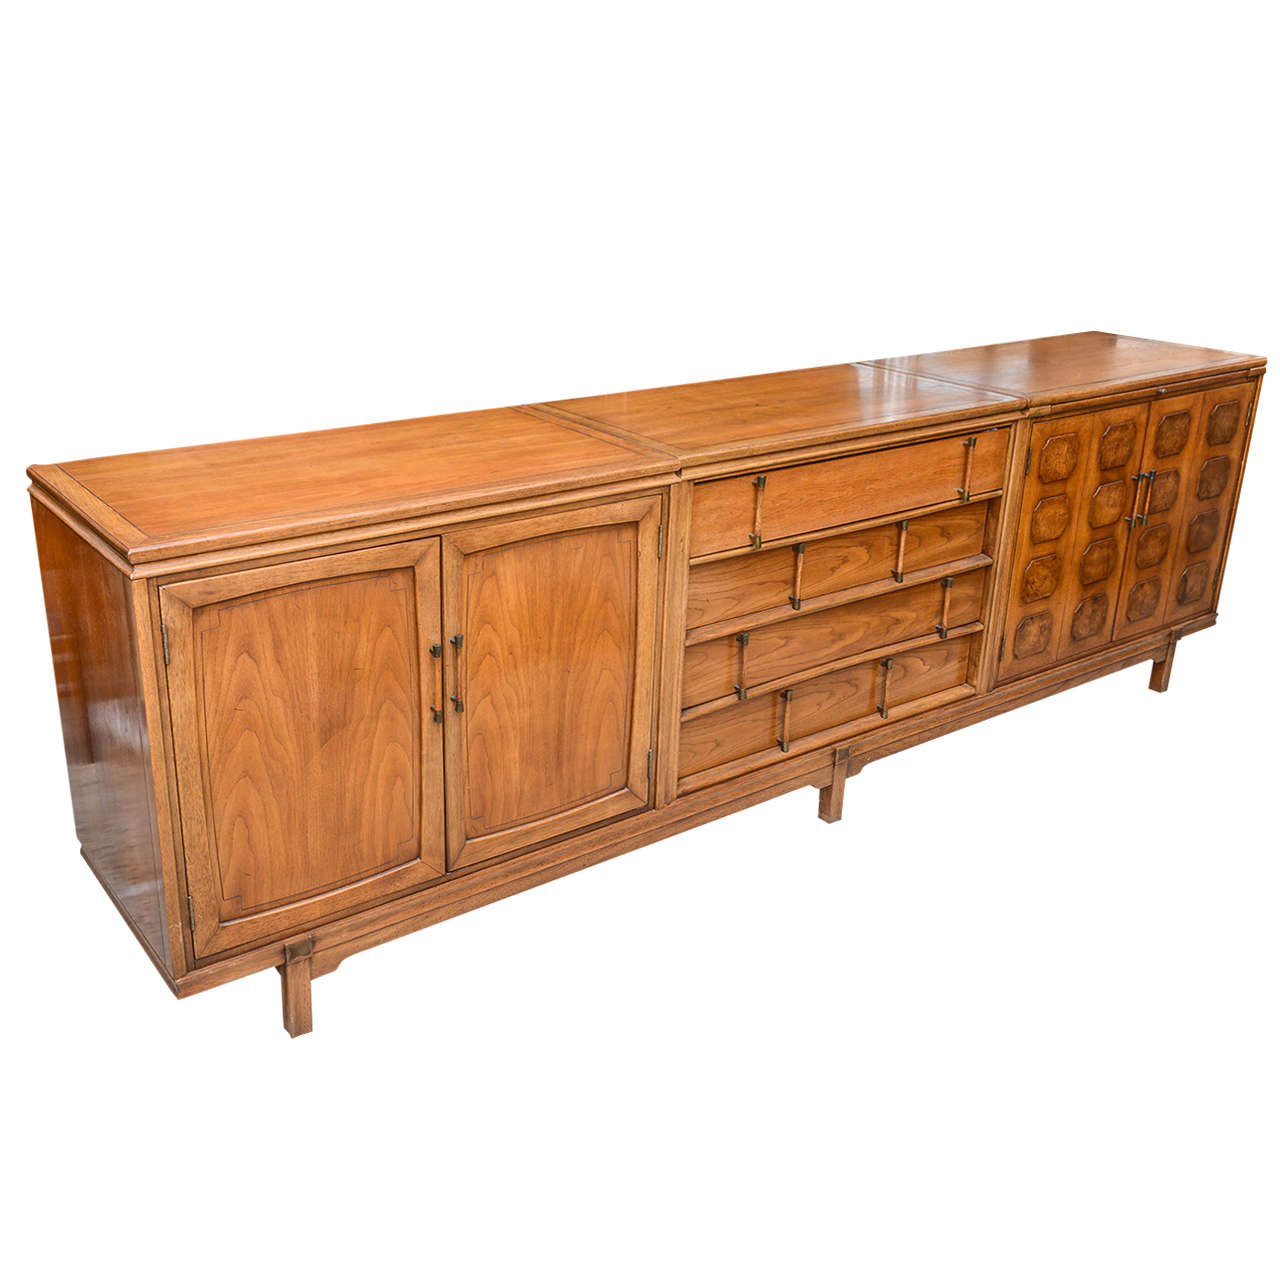 Long modern age credenza or entertainment center 1960s for Long furniture